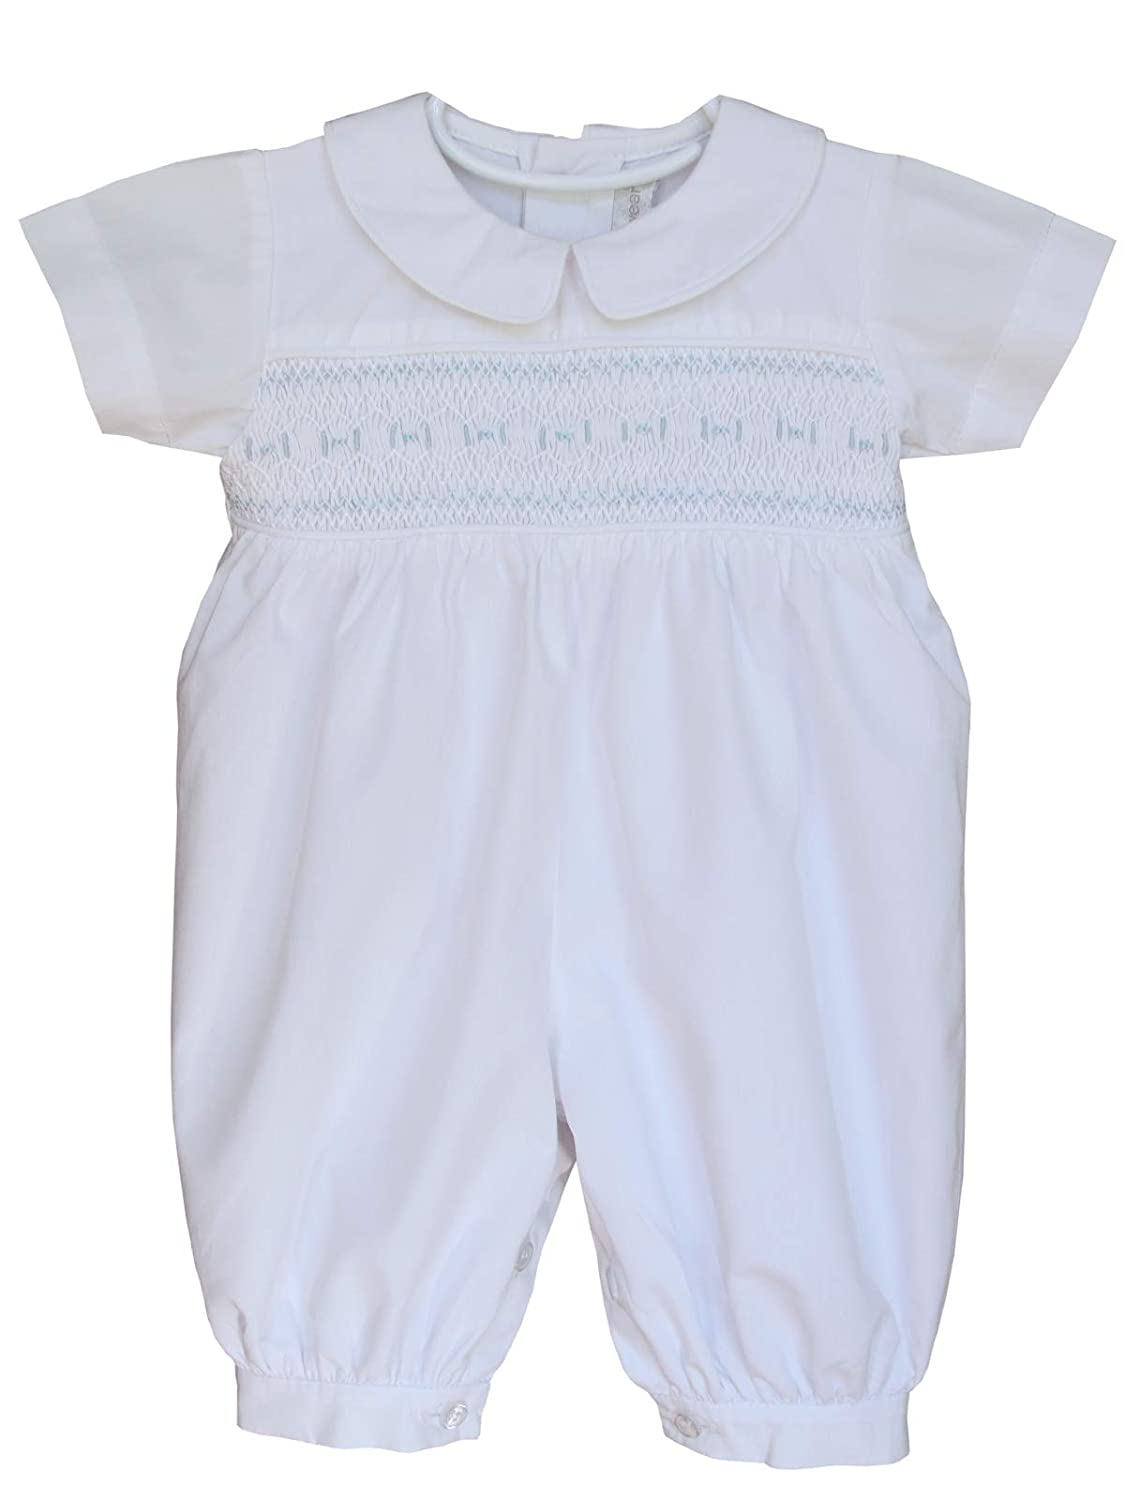 Carouselwear Special Occasion Baby Boy White Smocked Christening Outfit